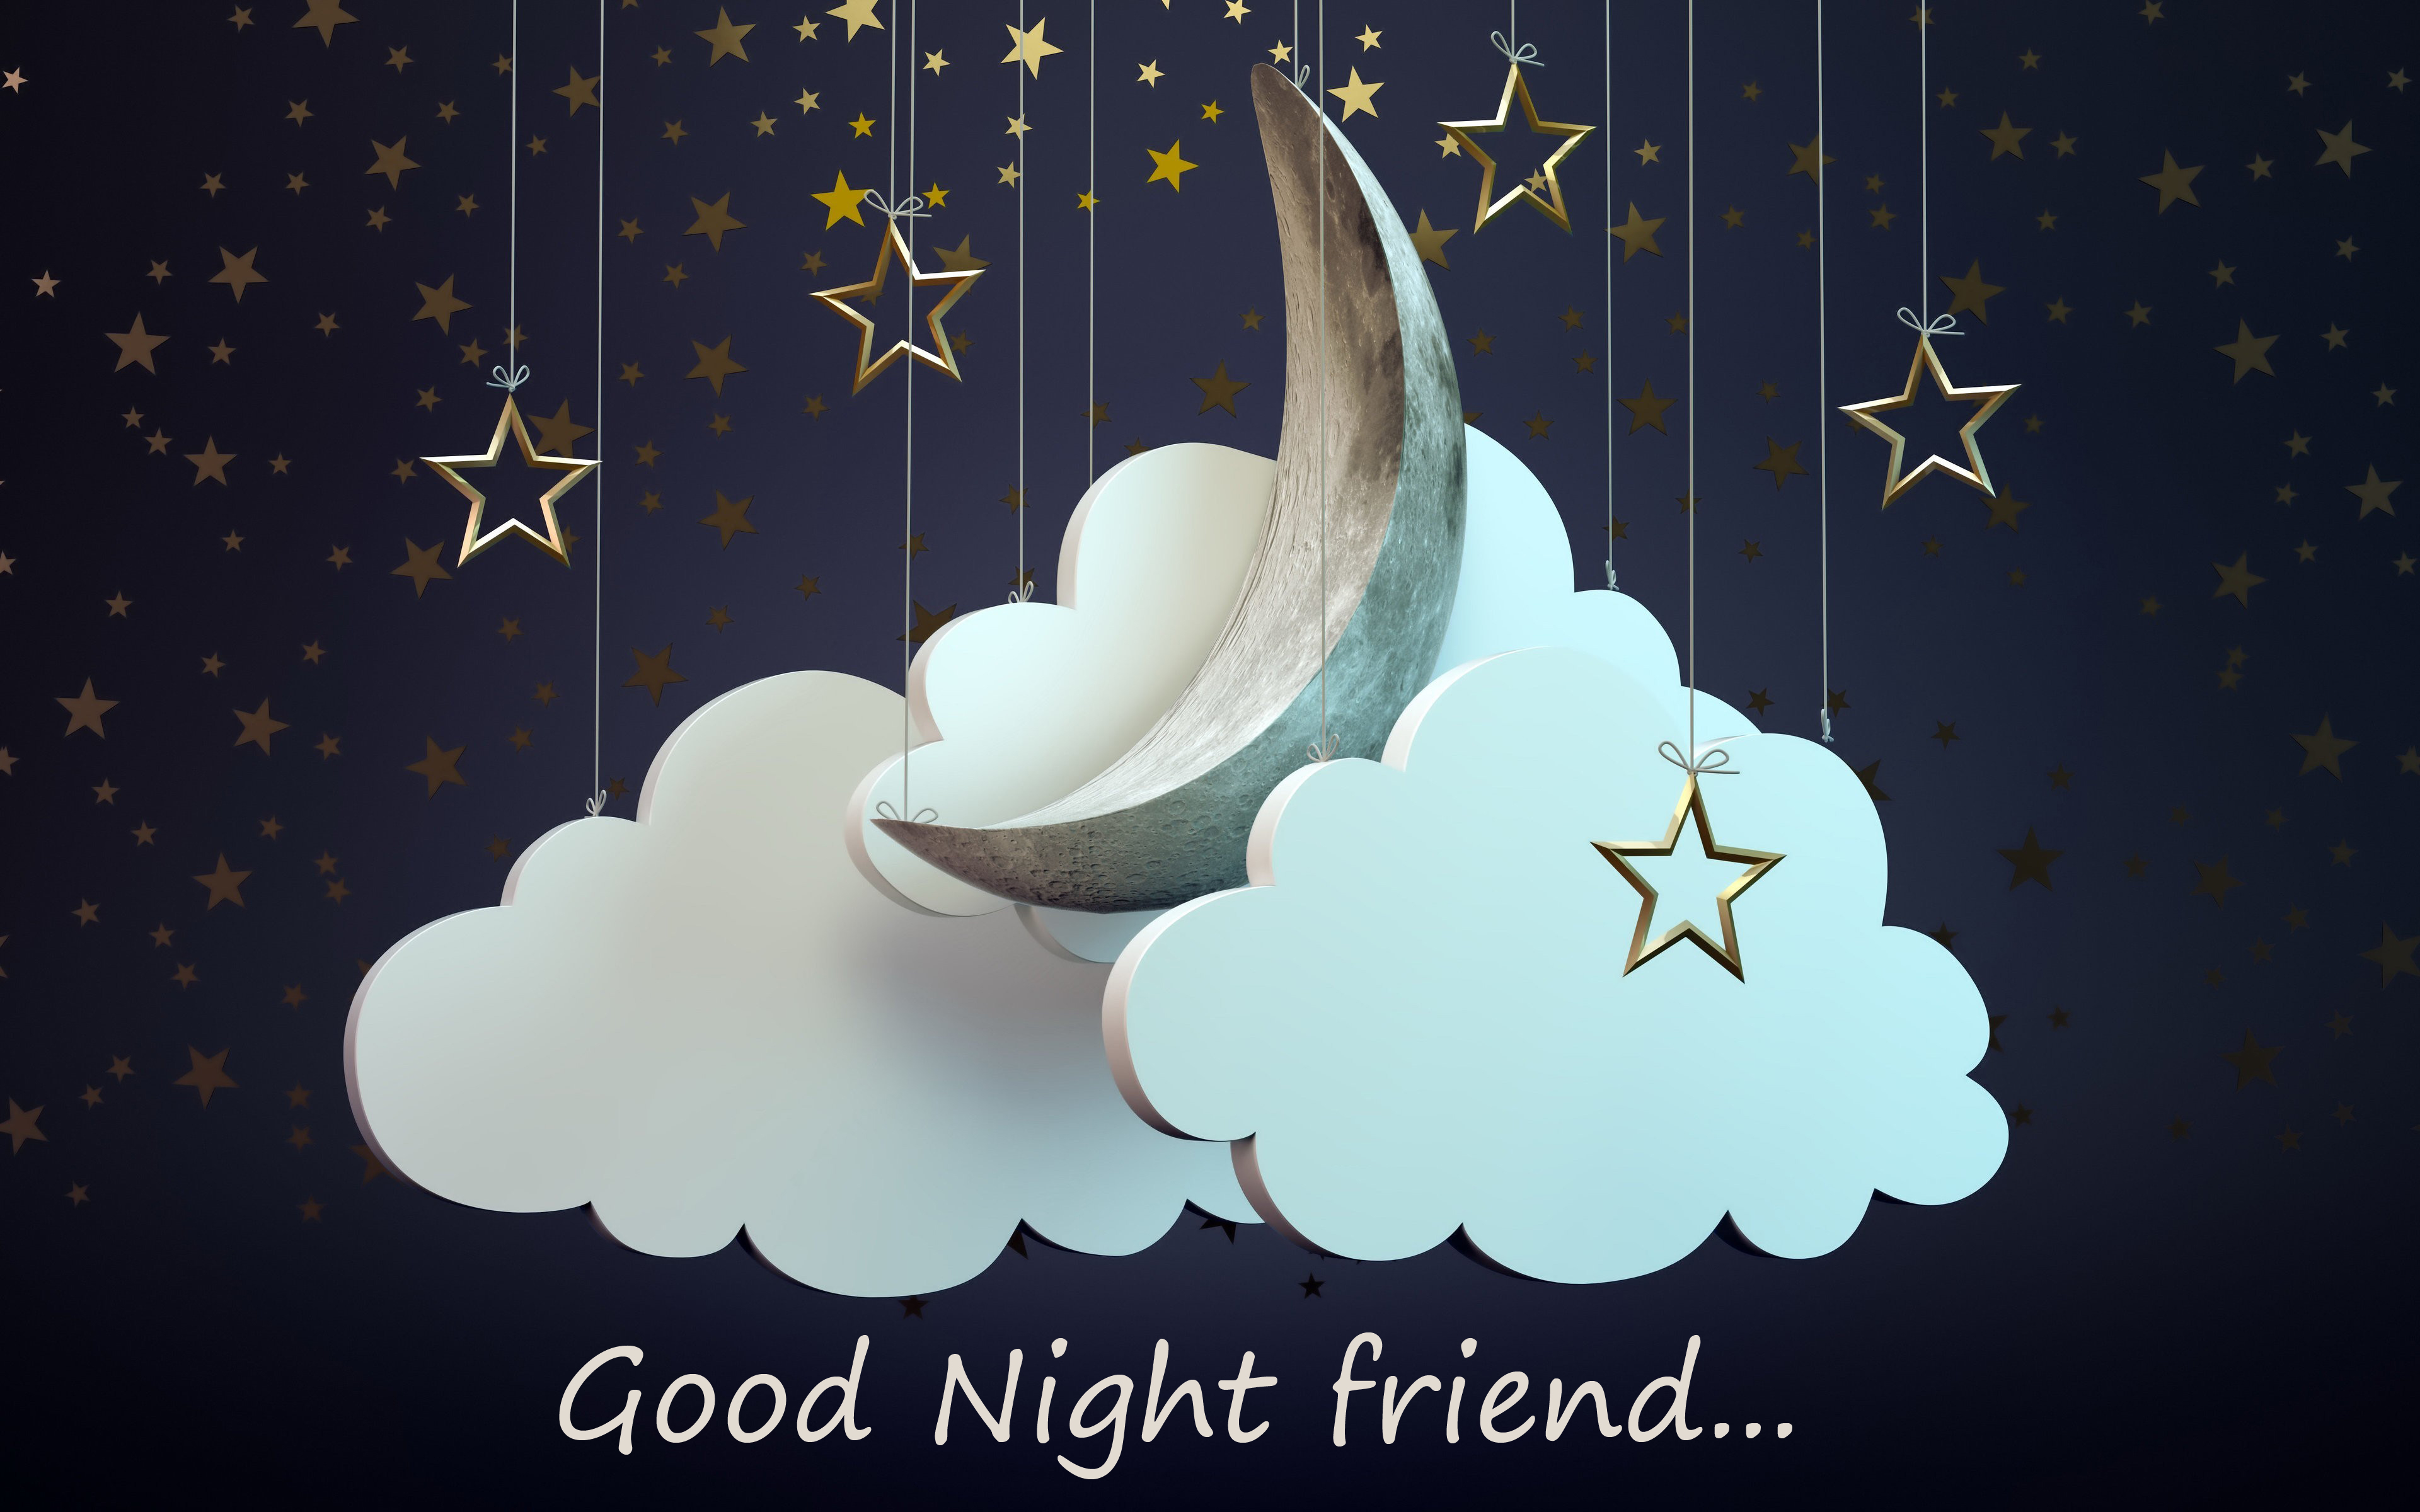 Good night page 2 hd good night wallpaper download voltagebd Images